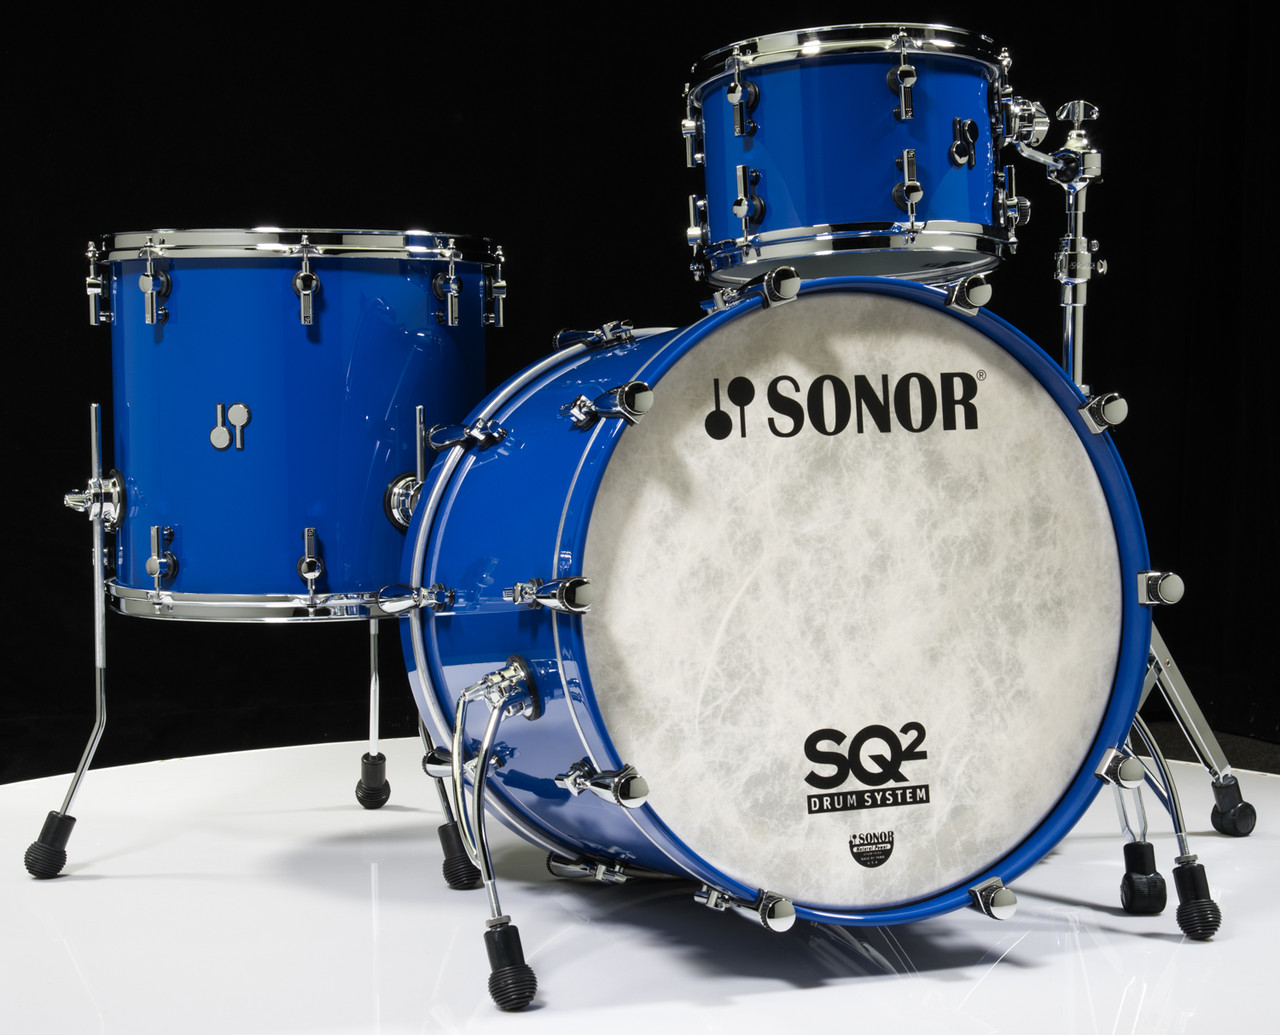 Sonor SQ2 Drums 3pc Beech Shell Pack - Ultra Marine